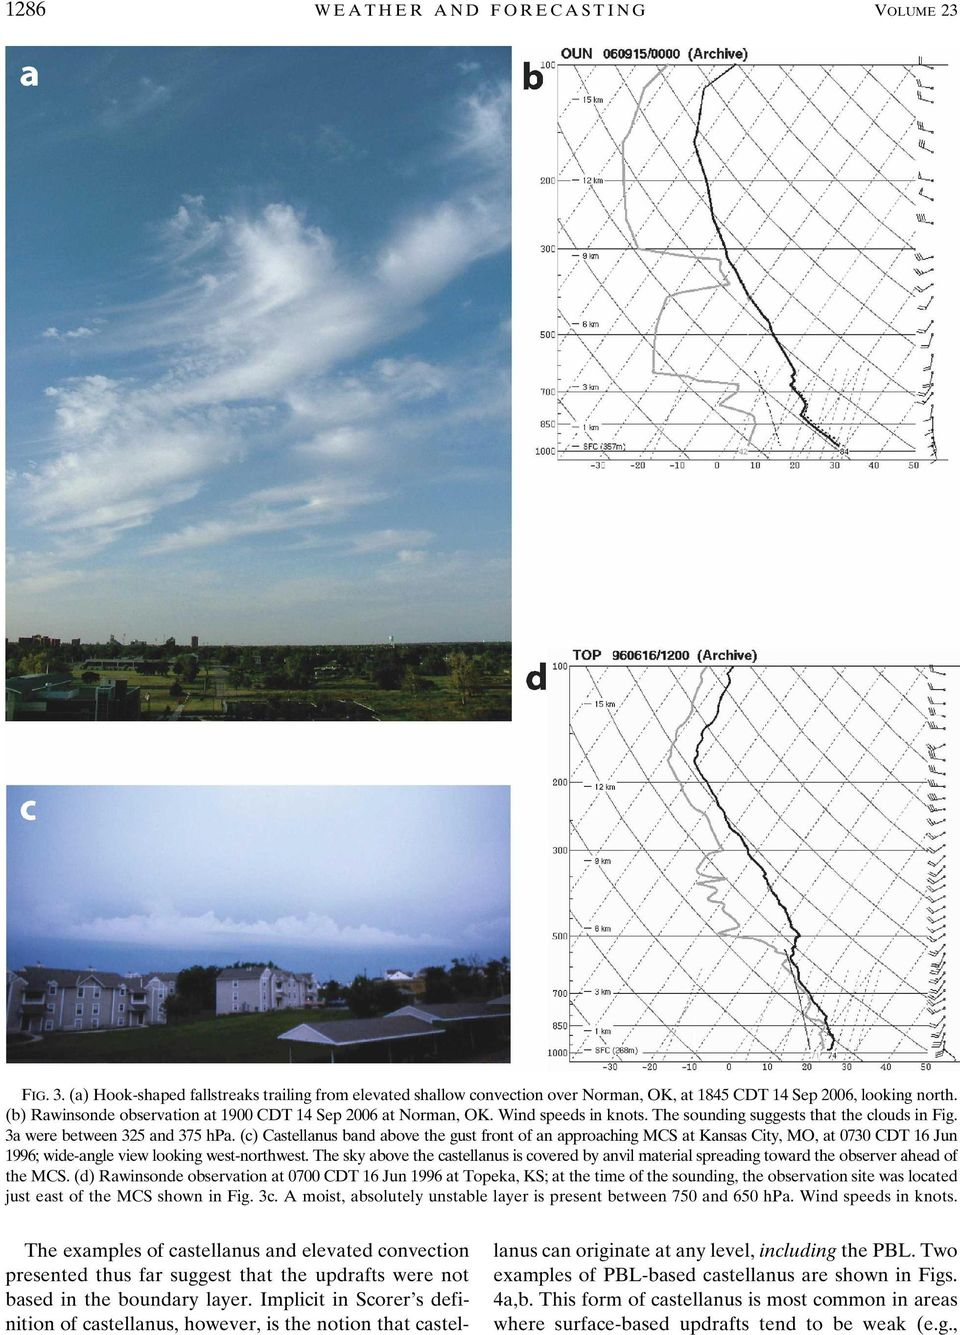 (c) Castellanus band above the gust front of an approaching MCS at Kansas City, MO, at 0730 CDT 16 Jun 1996; wide-angle view looking west-northwest.